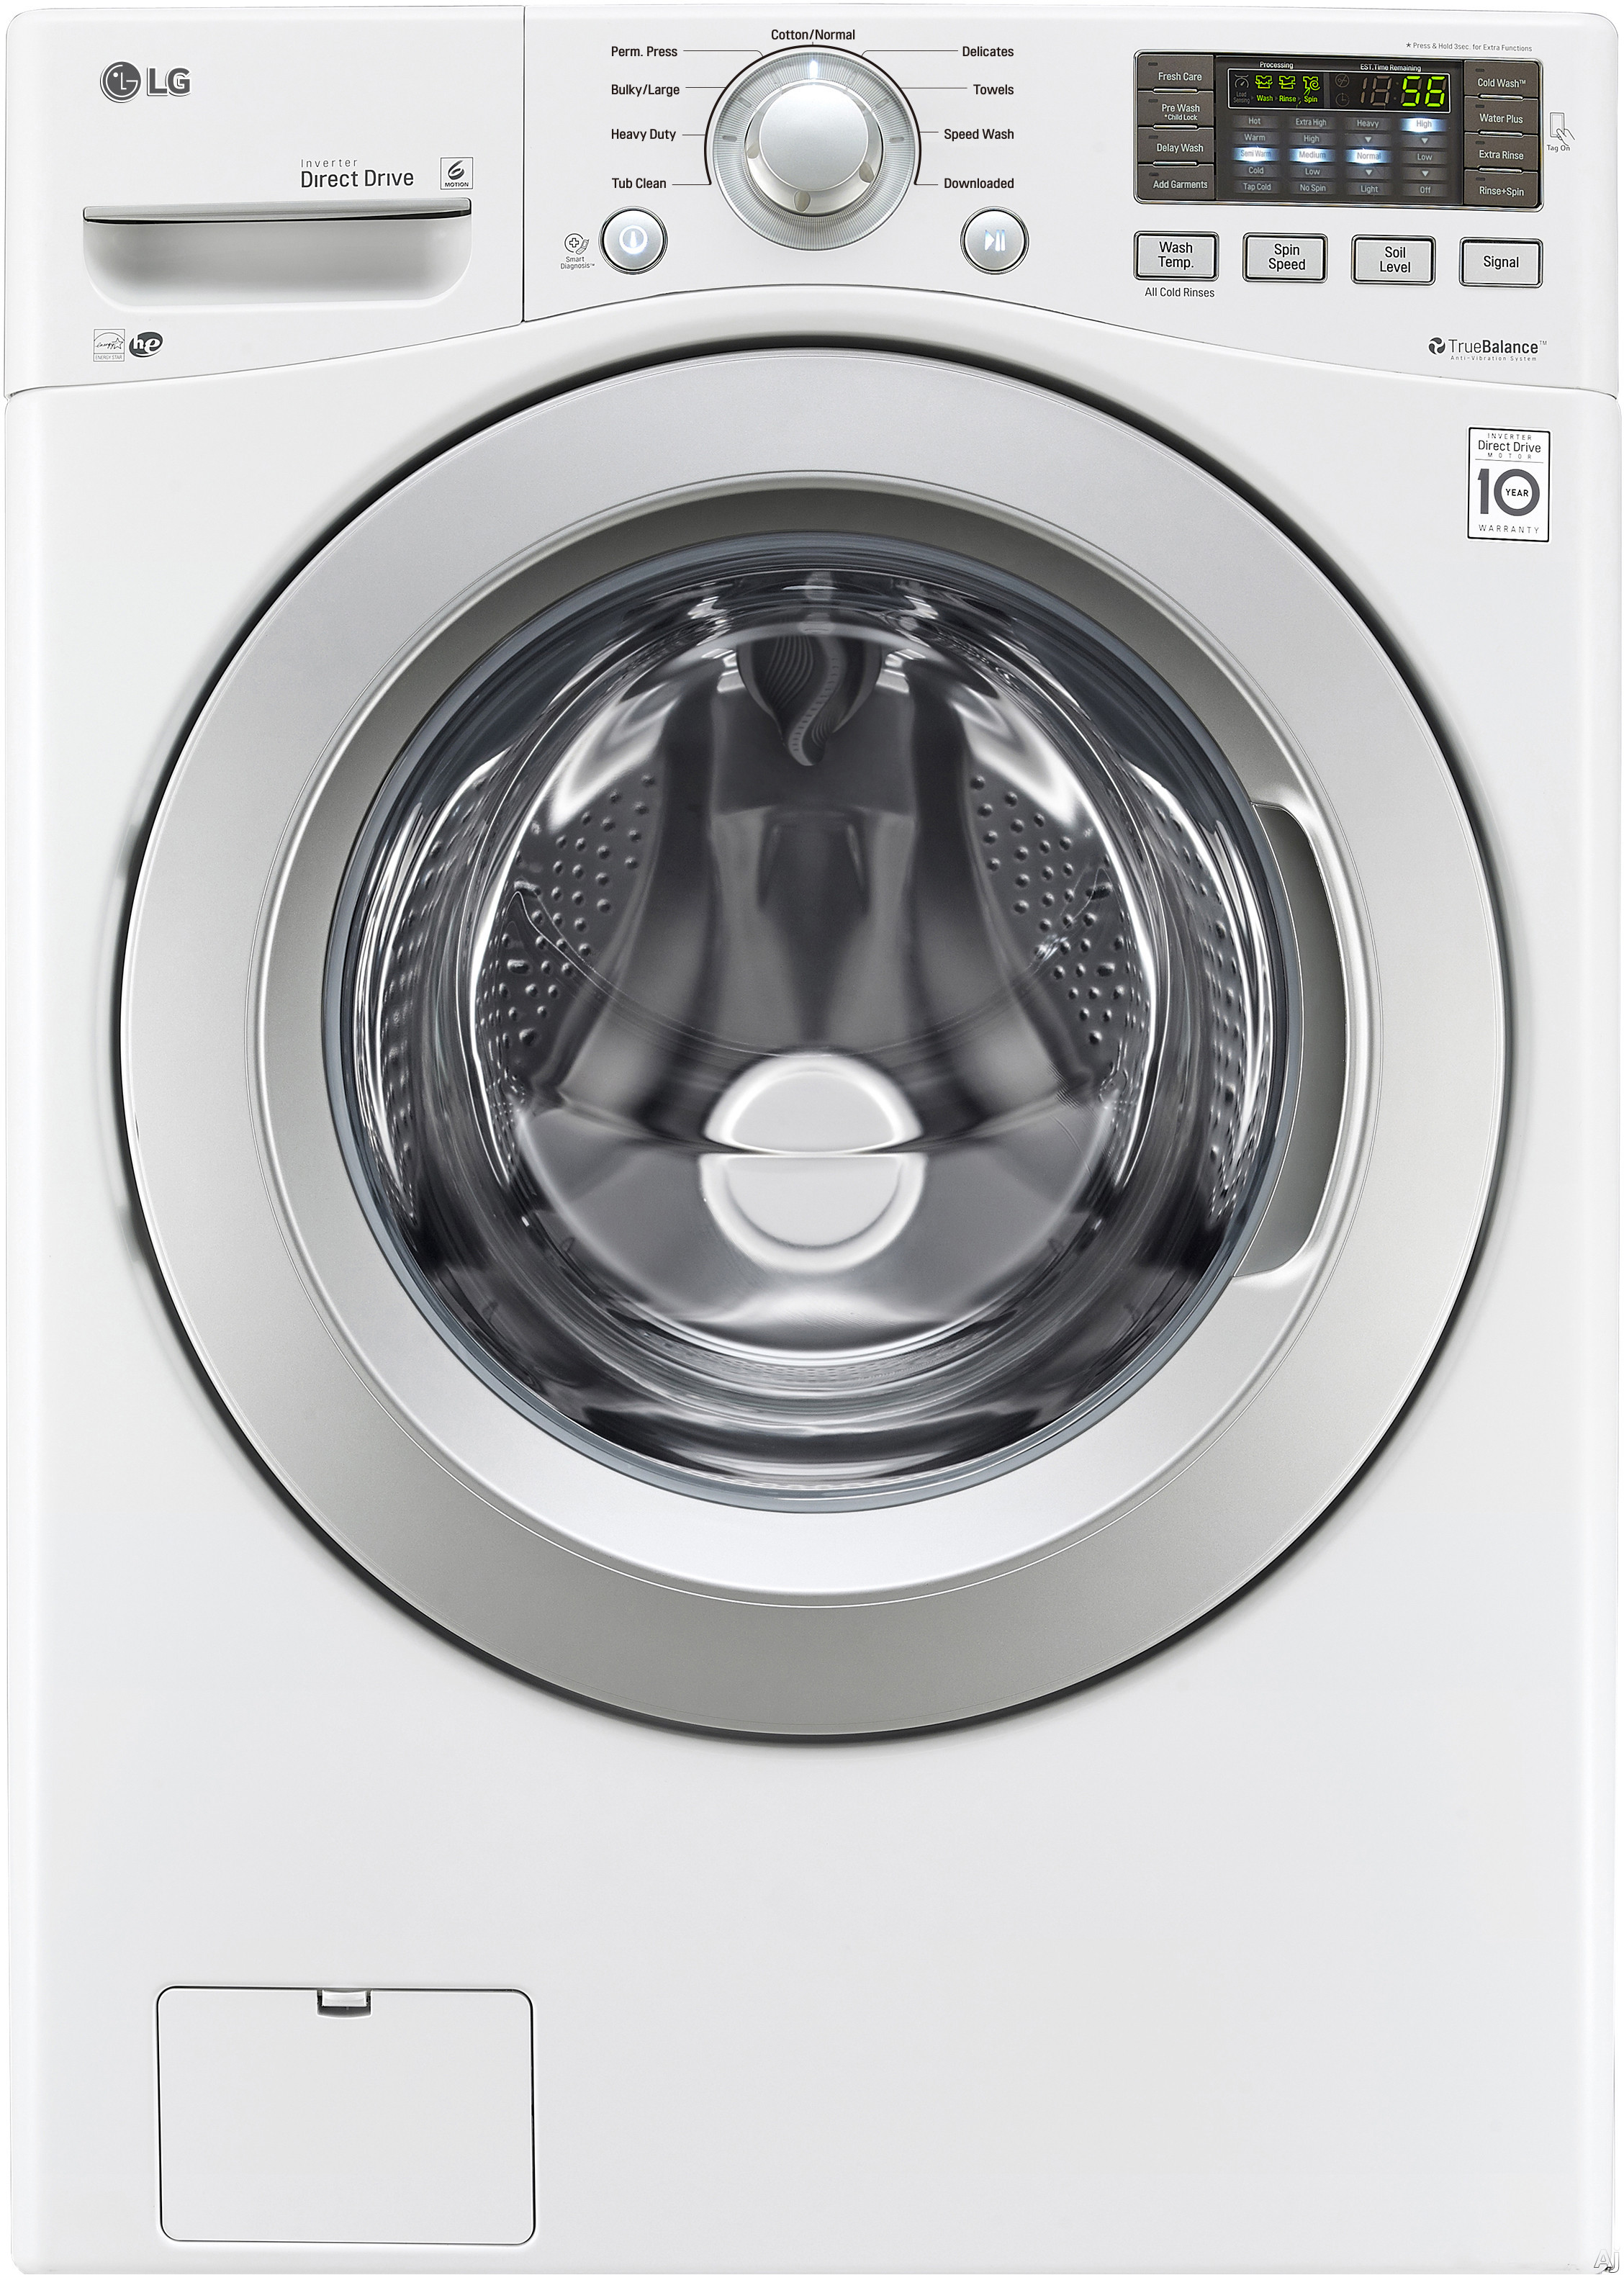 LG WM3270CW 27 Inch Front Load Washer with NFC Smartphone Technology, TrueBalance Anti-Vibration, NeveRust Drum, 4.5 cu. ft. Capacity, 9 Wash Cycles, LoDecibel Quiet Operation and 4 Tray Dispenser WM3270CW